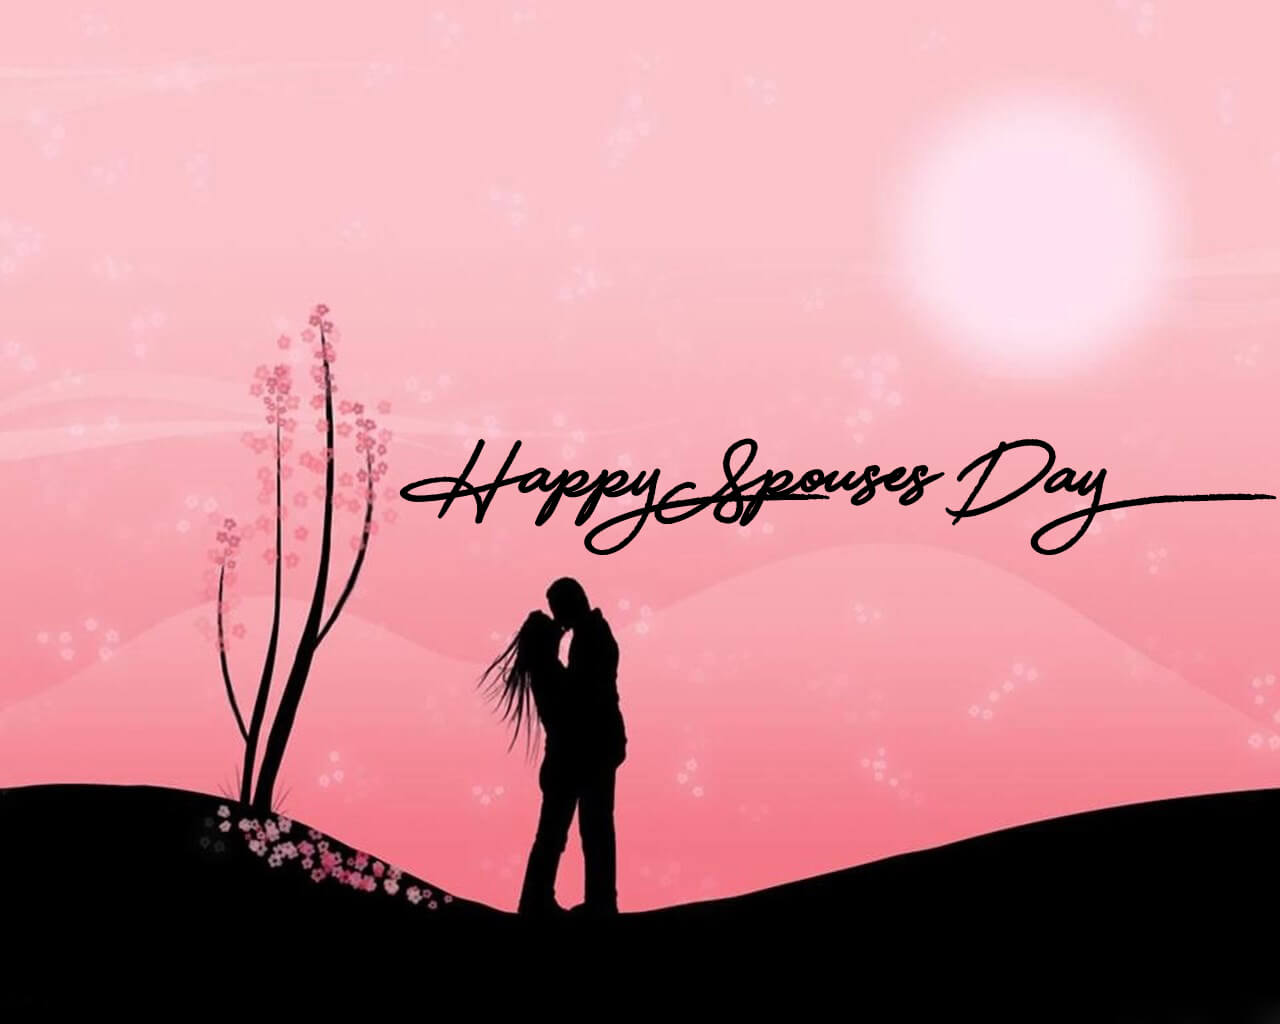 happy spouses day wishes love celebration hd wallpaper